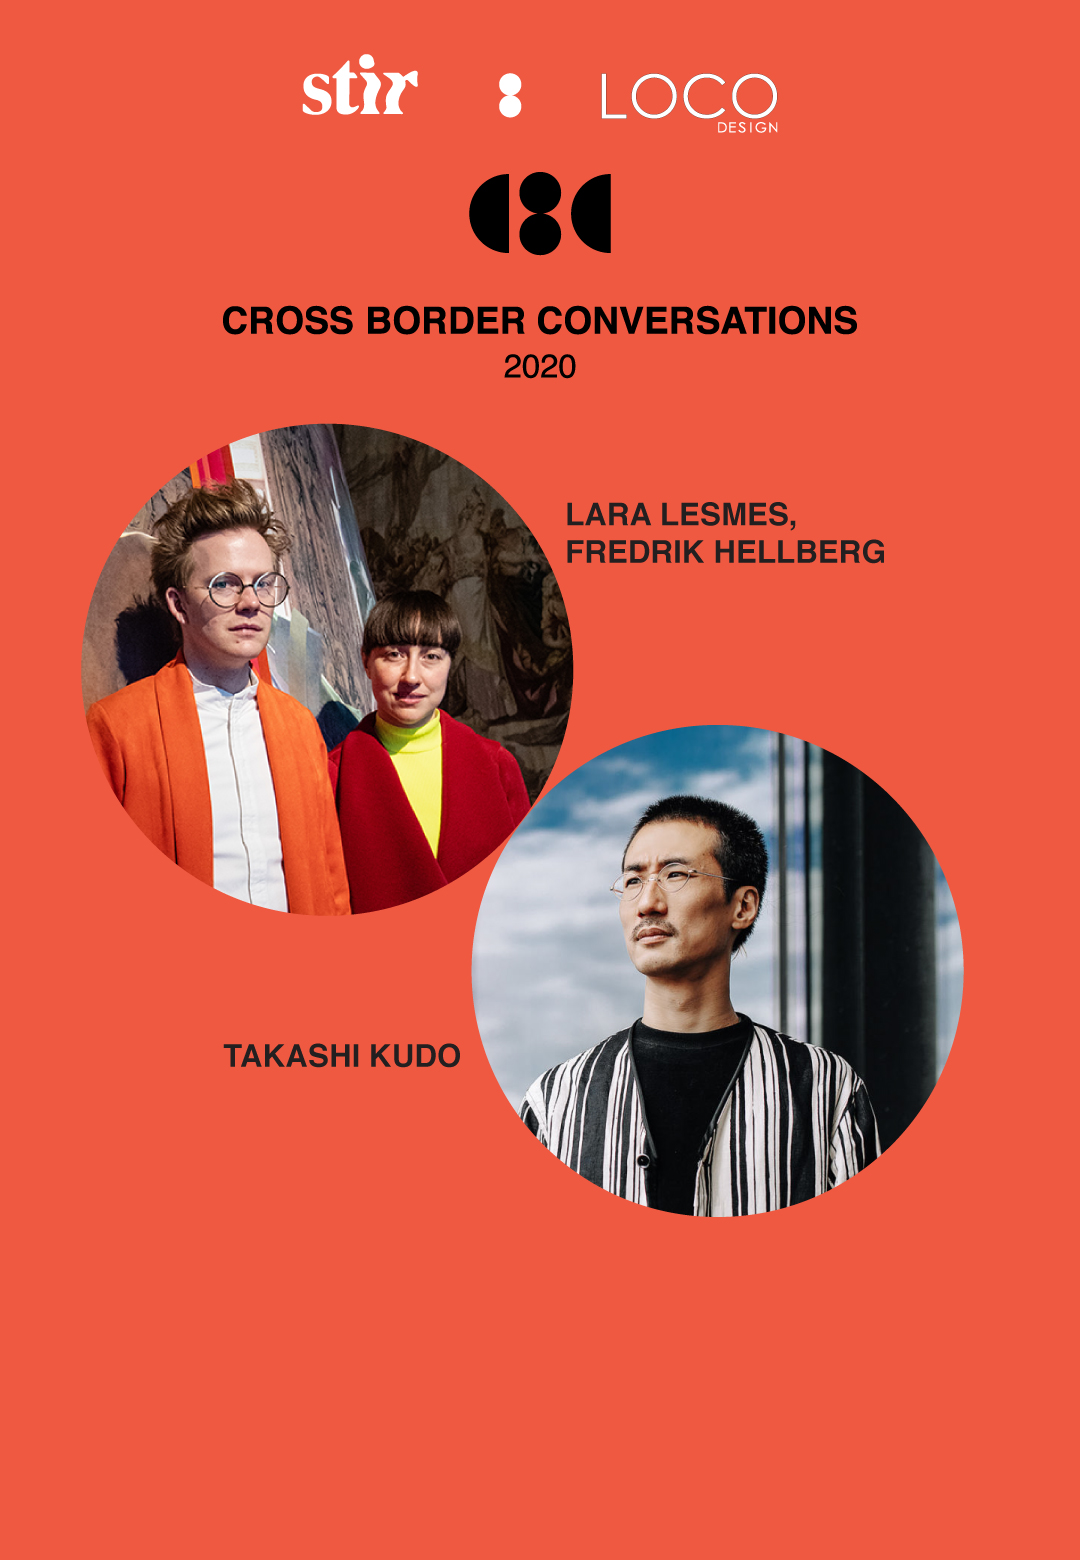 Cross Border Conversations: Space Popular X teamLab | STIR X LOCO Design | STIRworld